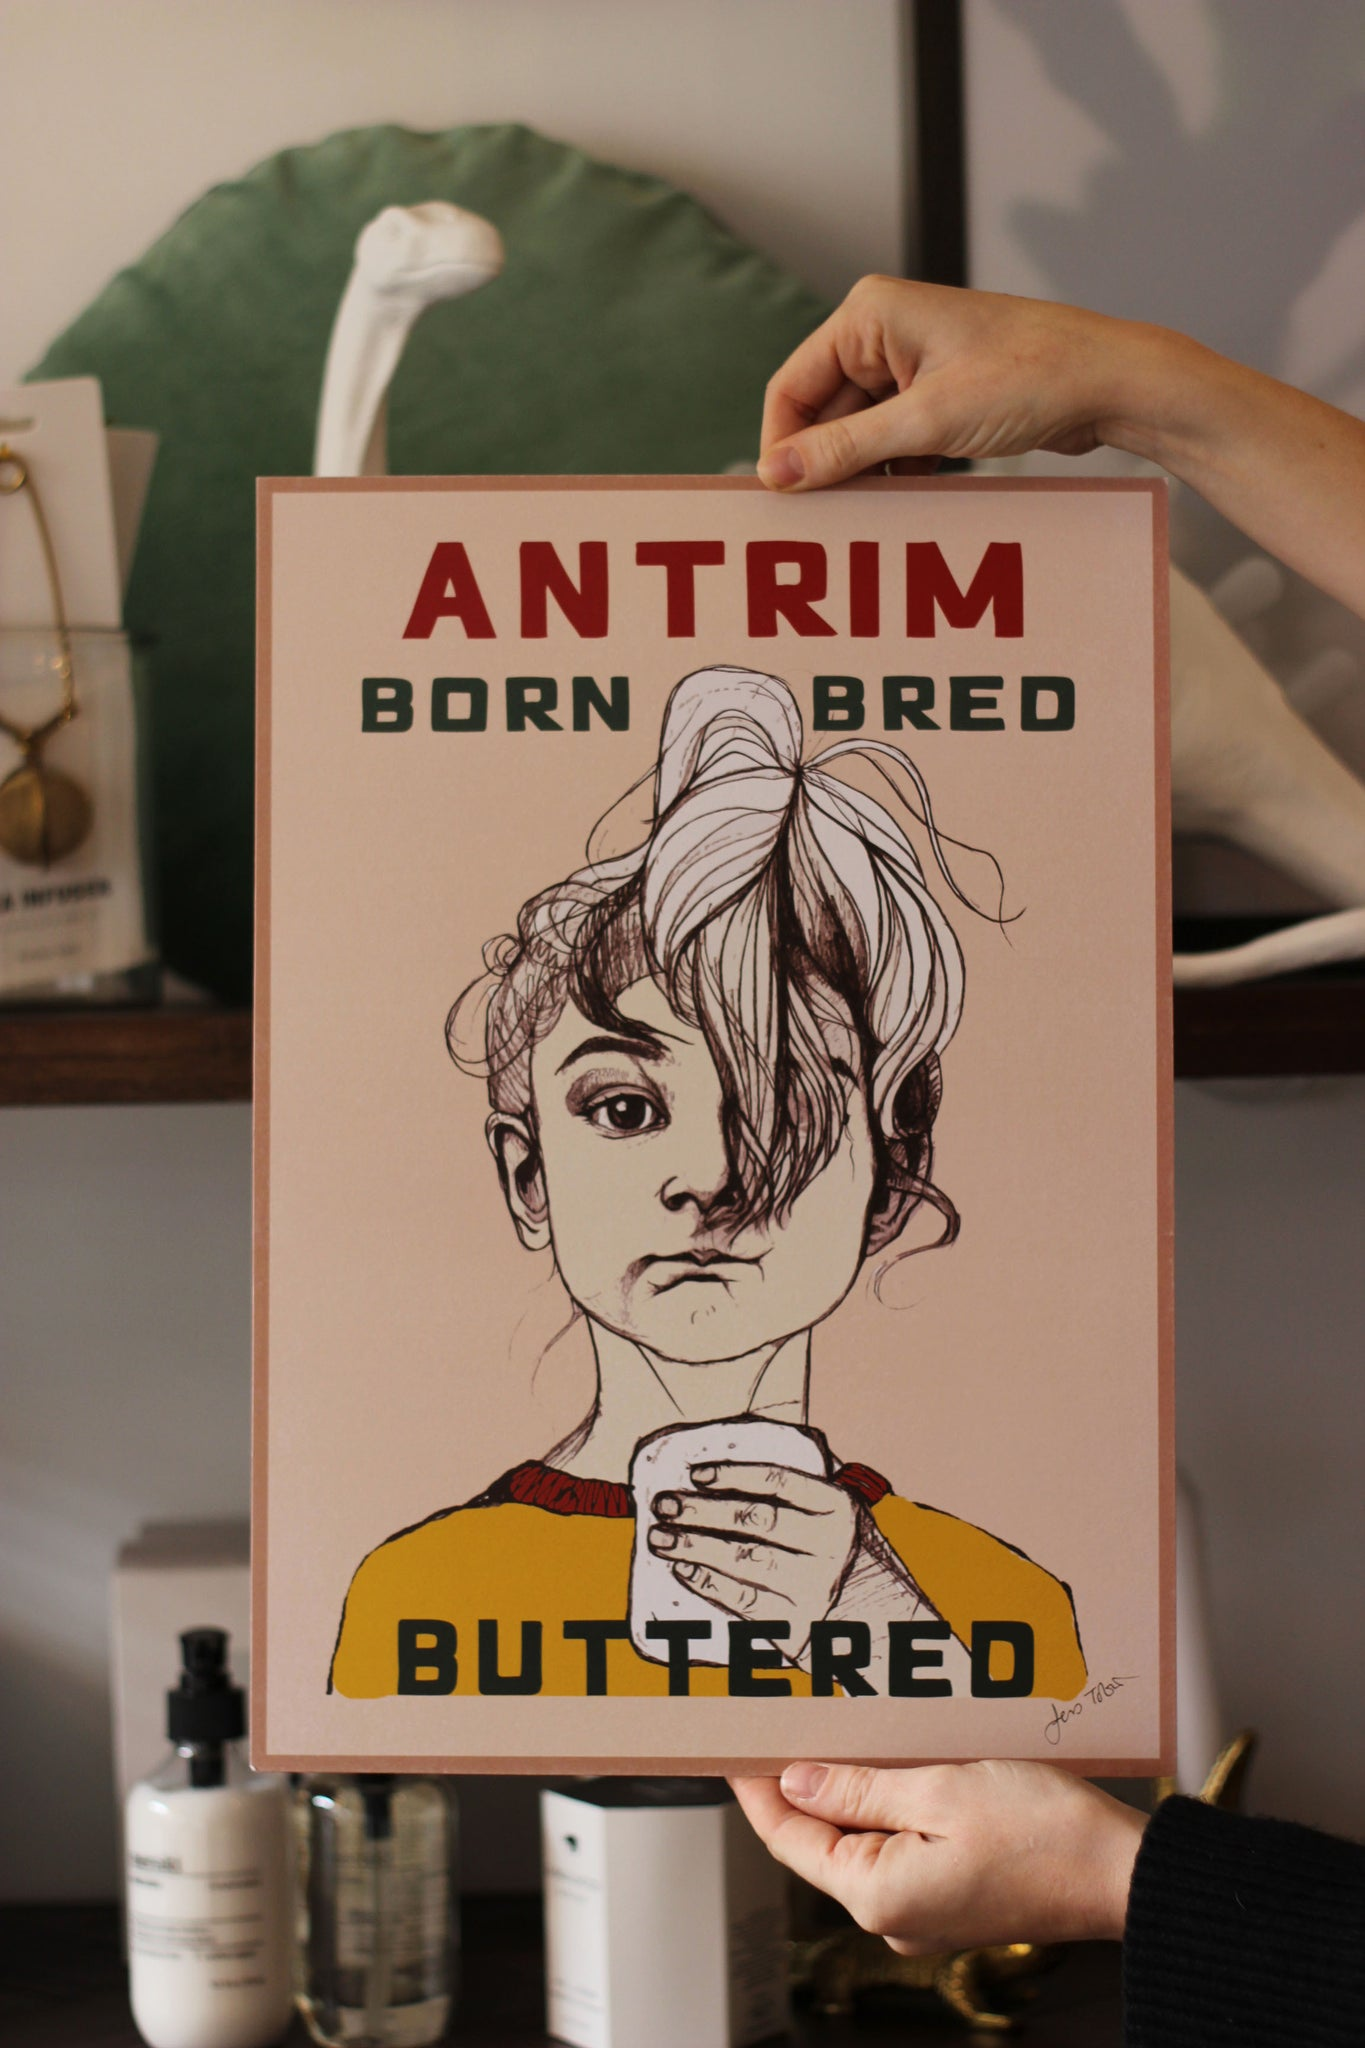 Antrim Born Bred Buttered Print